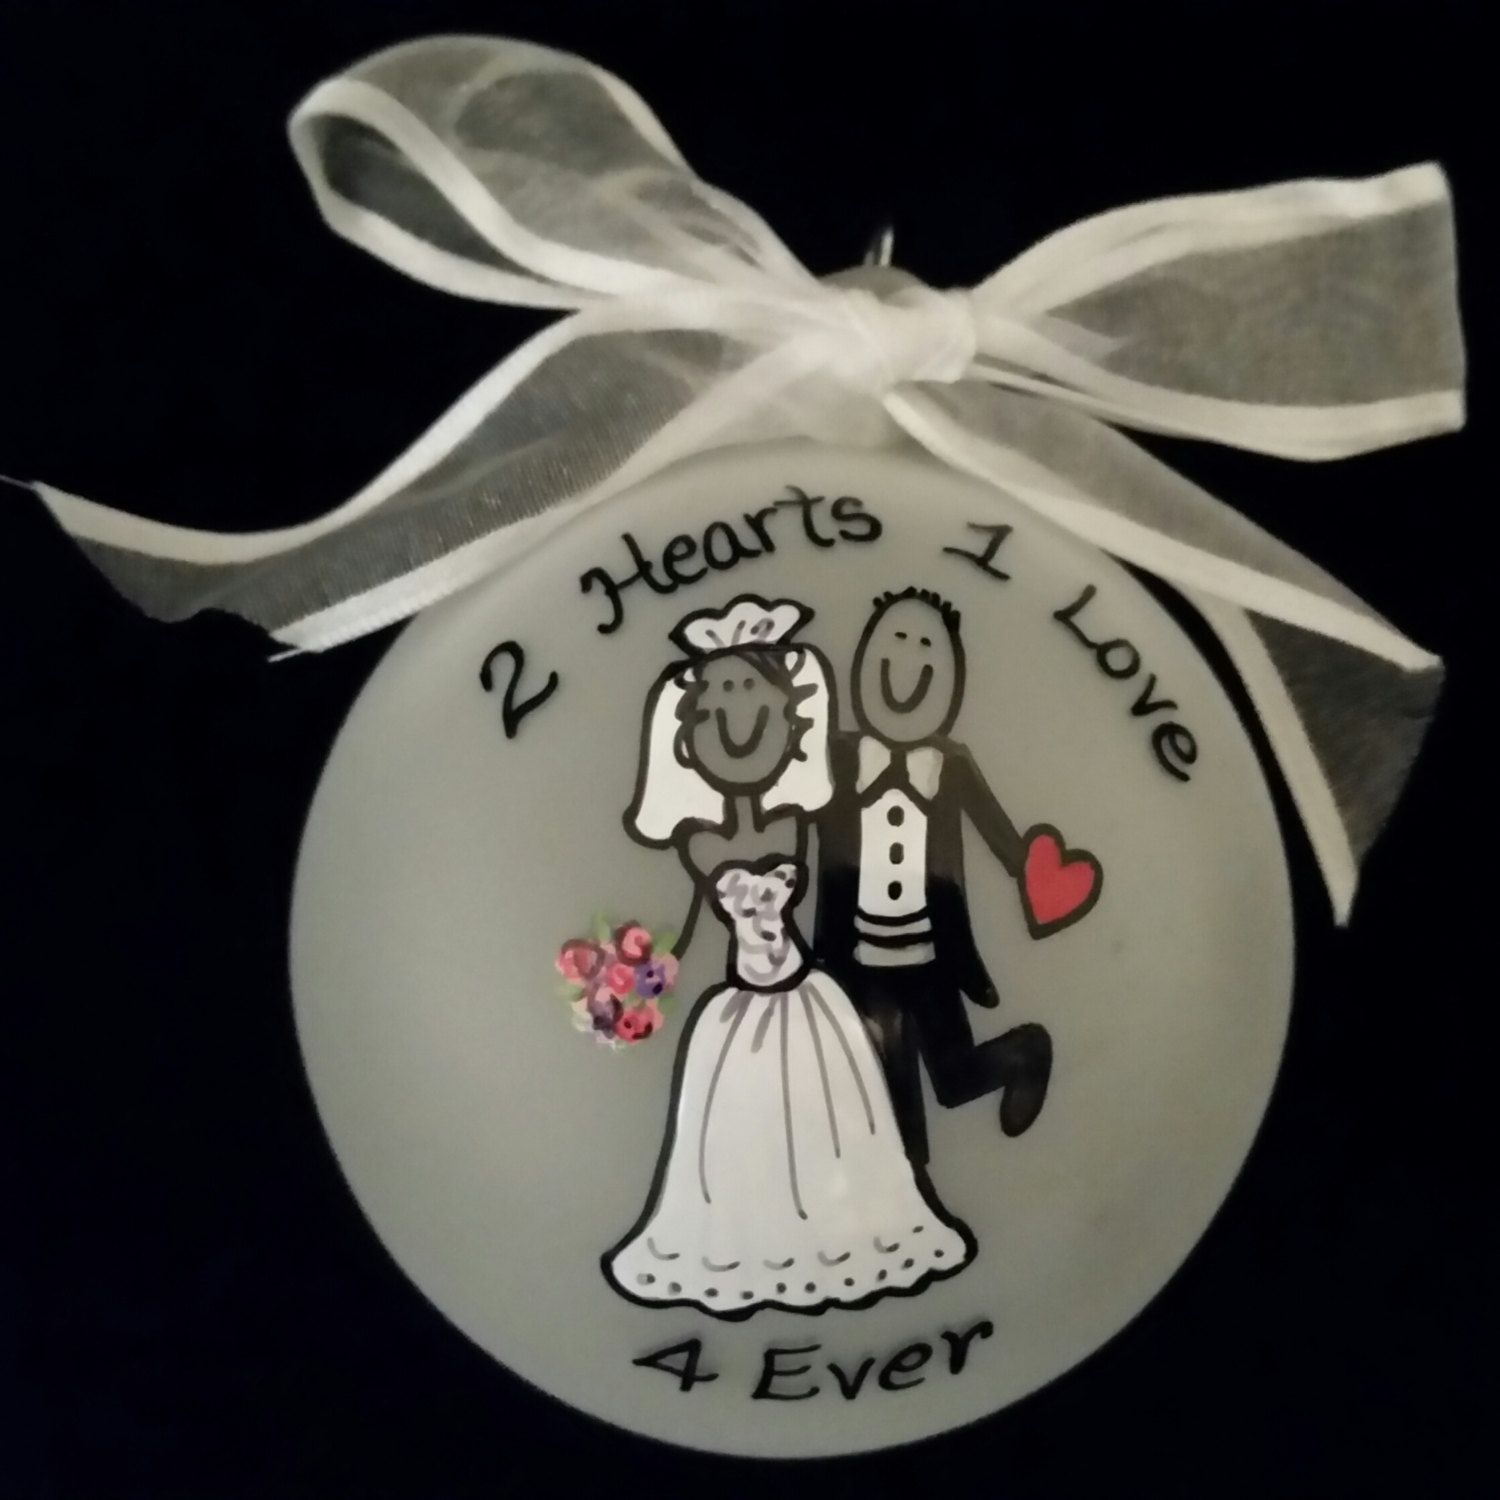 2 Hearts 1 Love Wedding Gift Personalized Ornament Christmas Favor